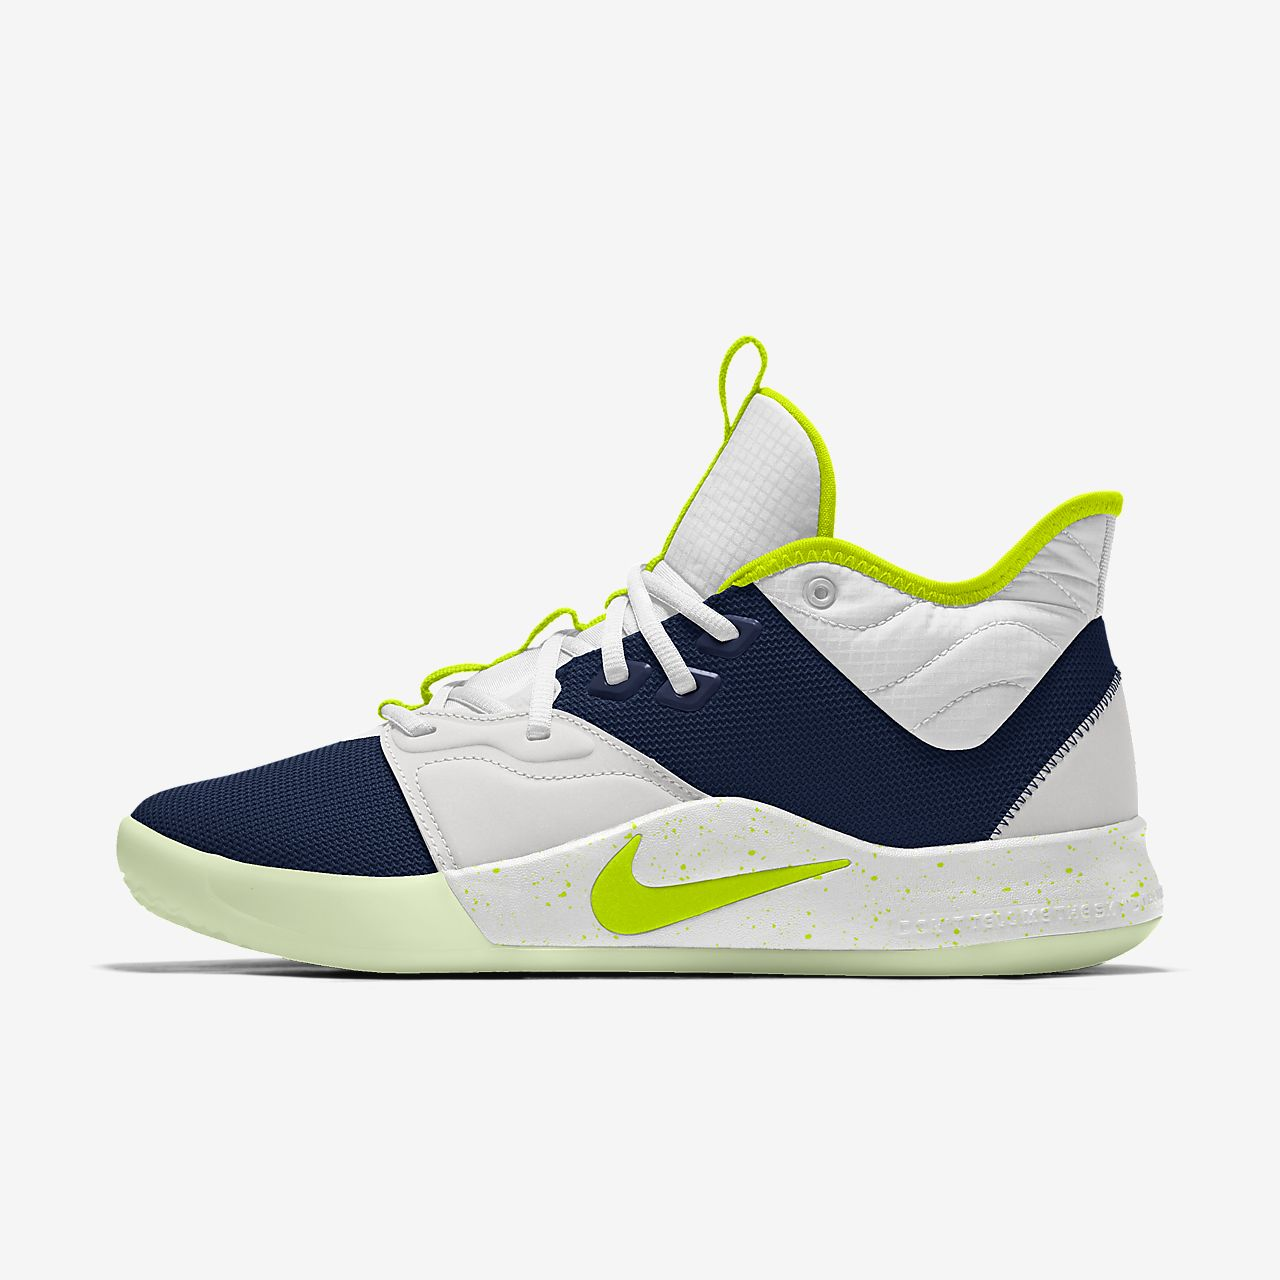 Chaussure de basketball personnalisable PG 3 By You